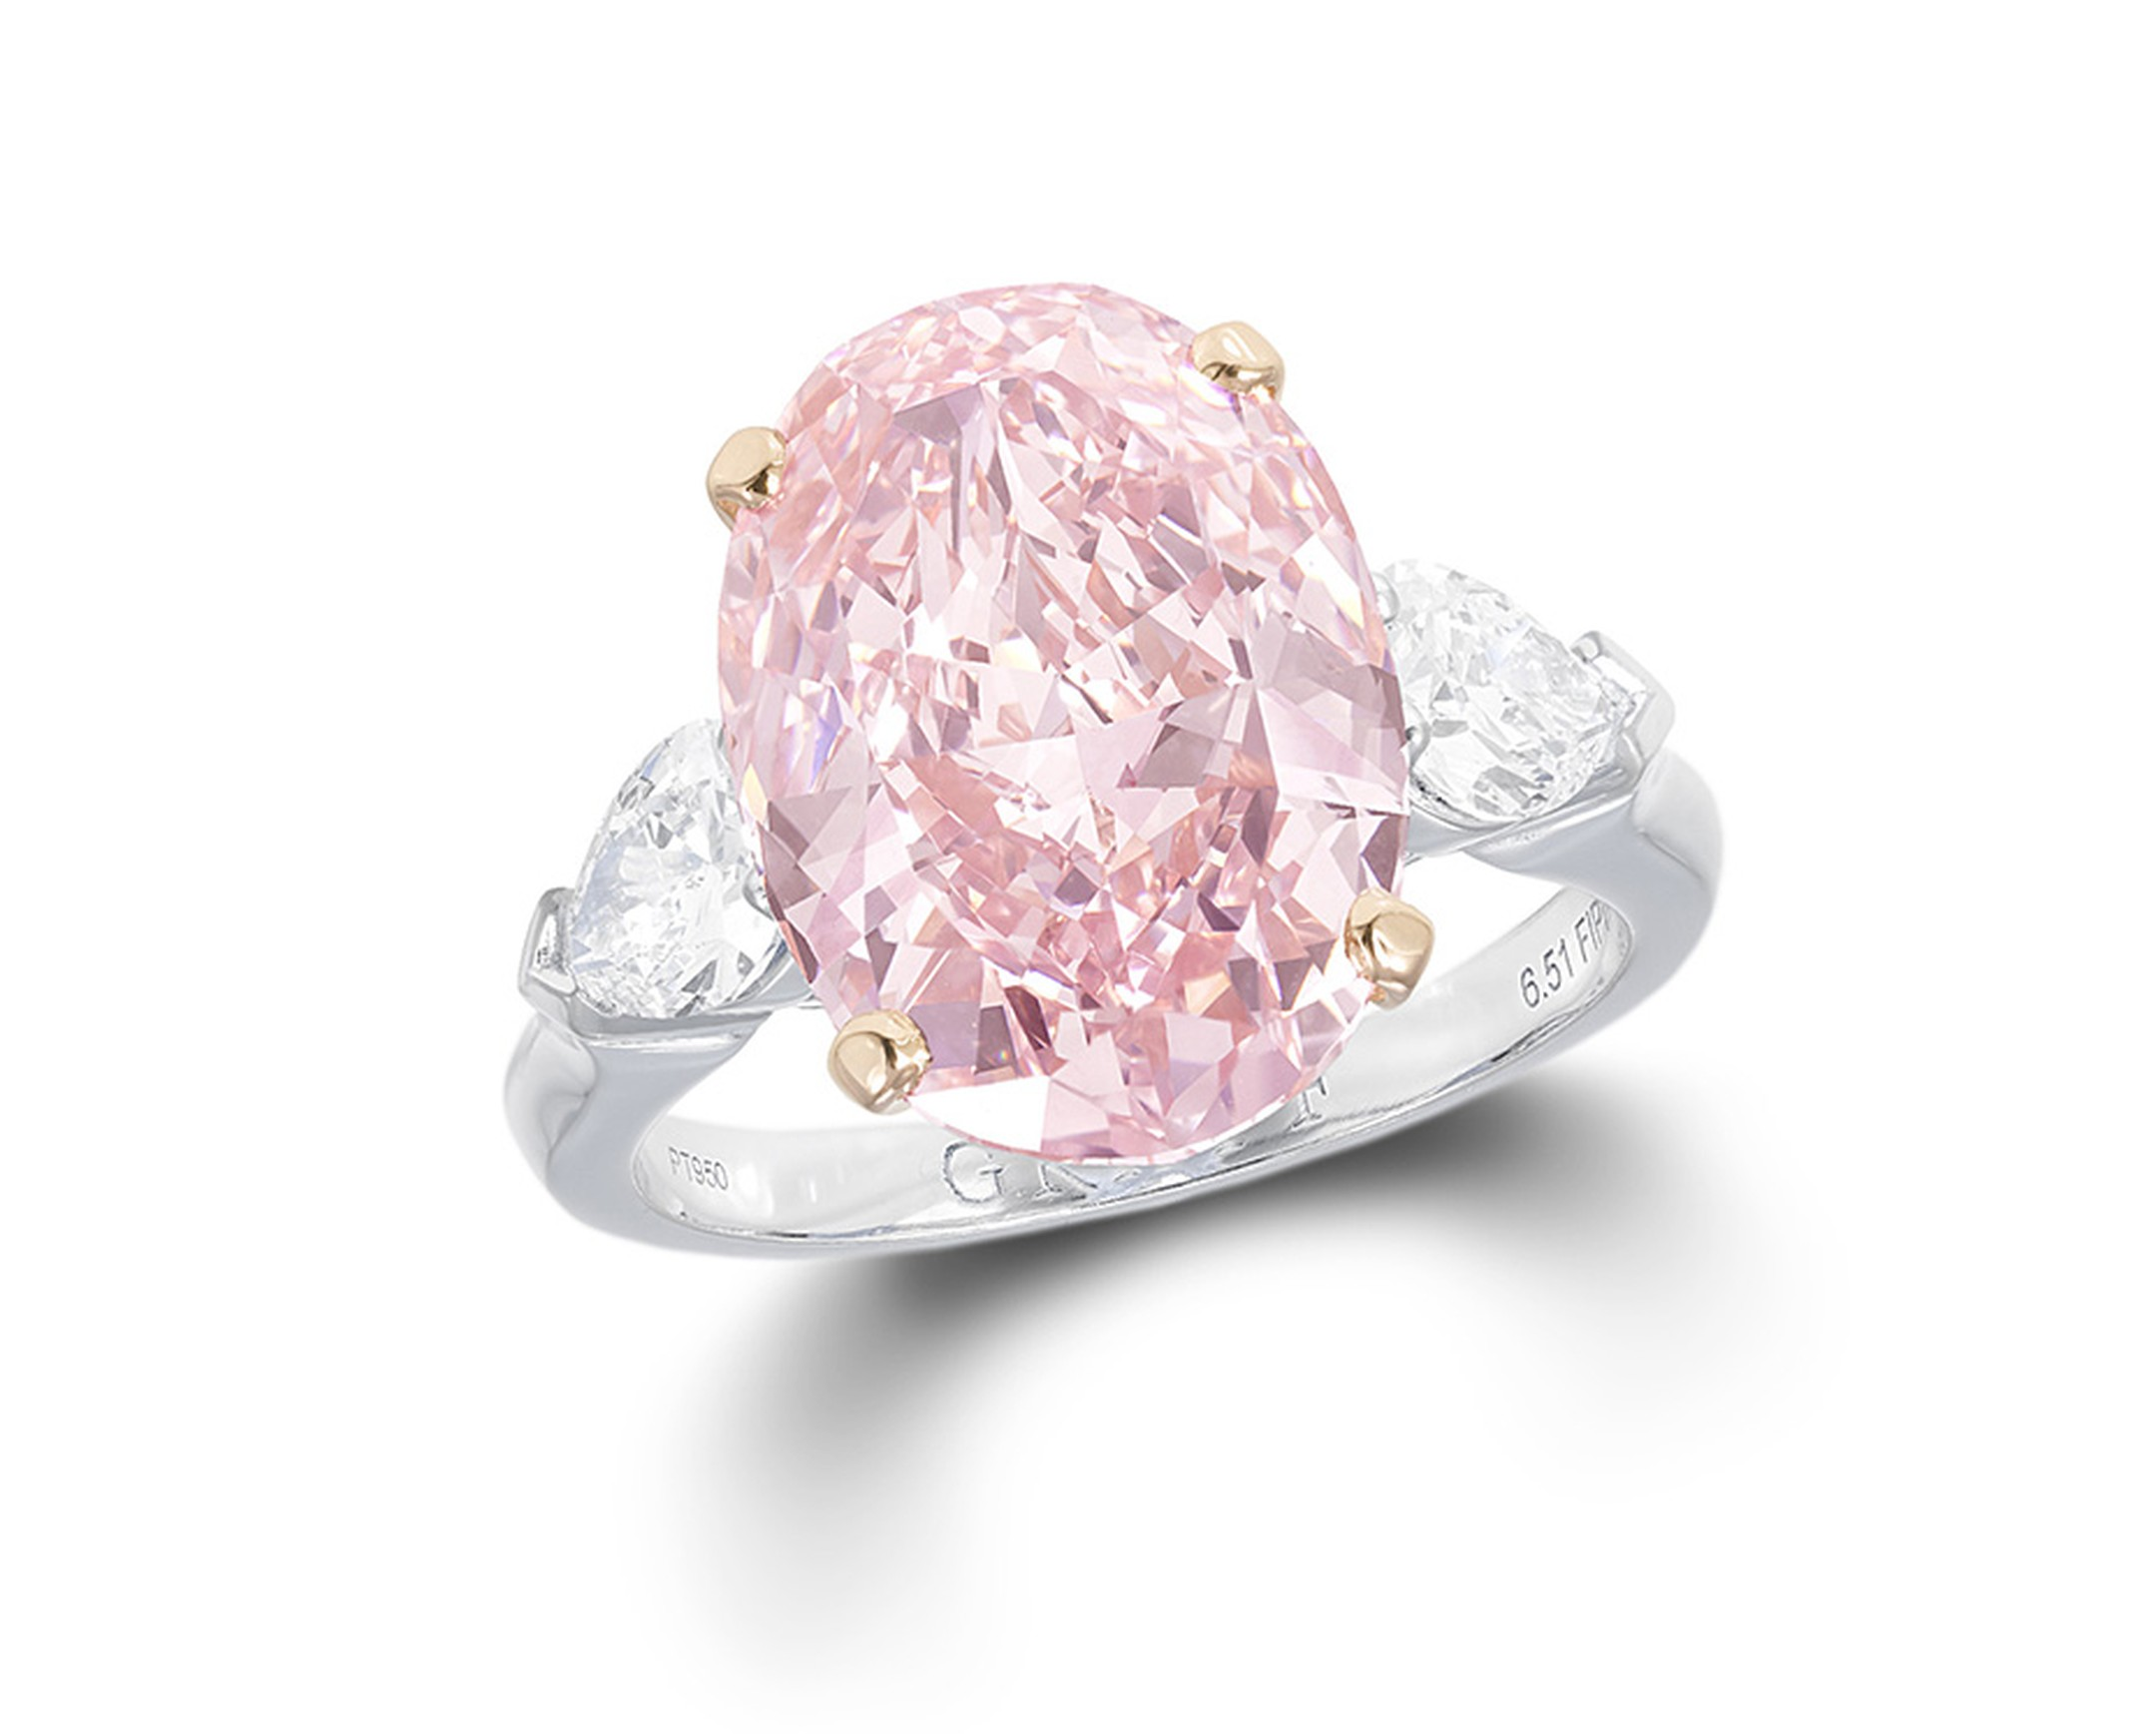 Graff Diamonds solitaire diamond ring, set with a 6.51ct oval cut Fancy Intense pink diamond